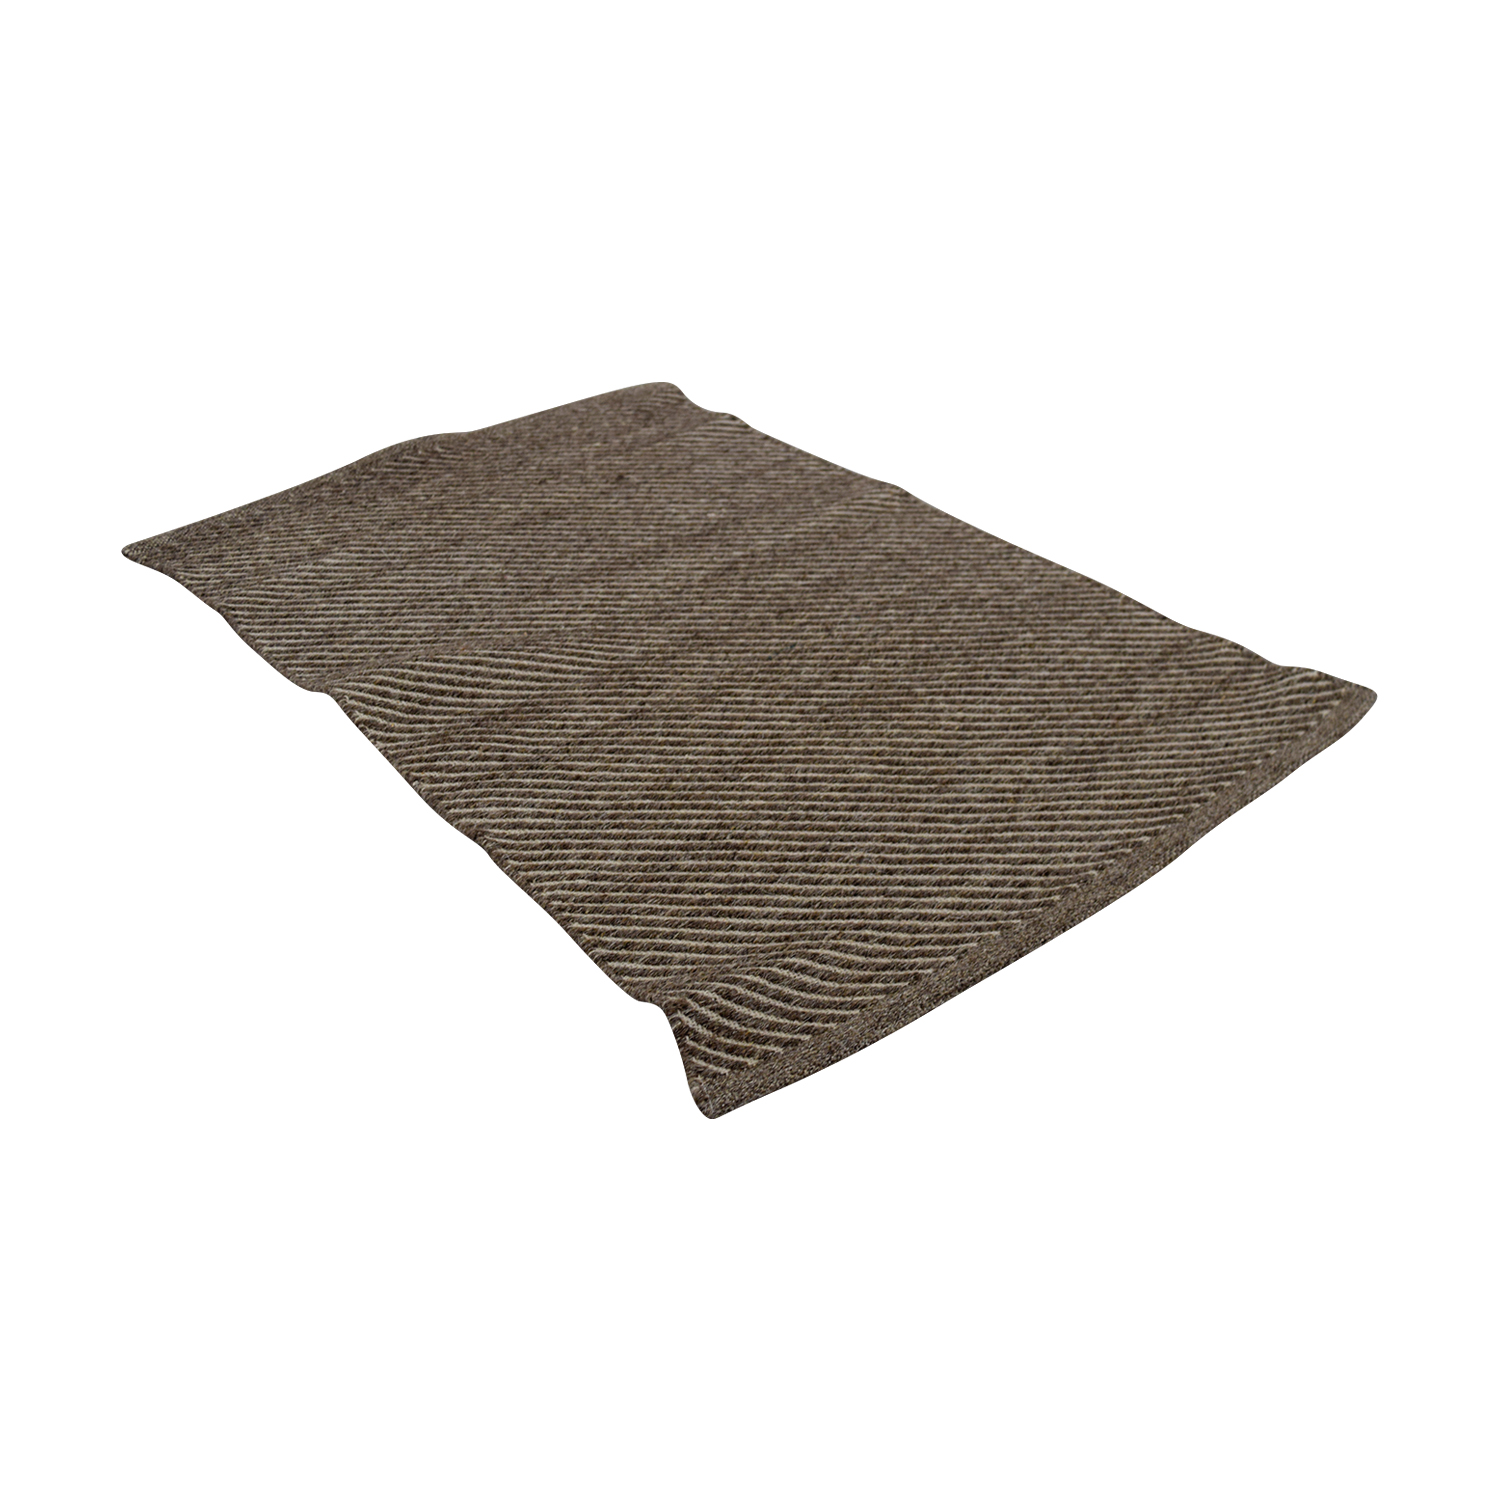 buy Obeetee Multi-Colored Rug Obeetee Decor